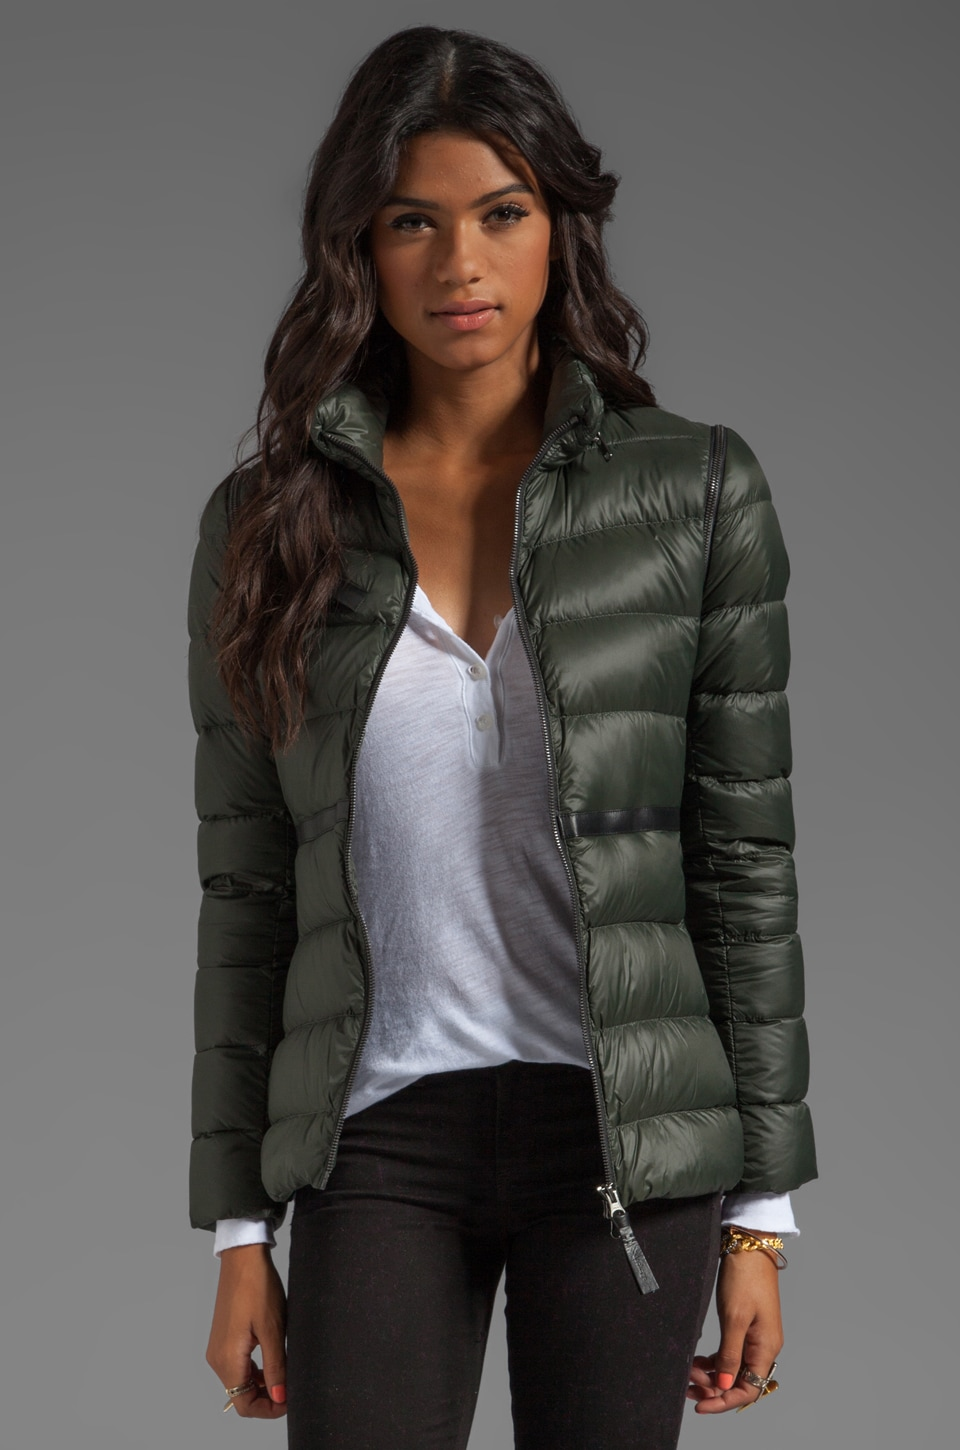 Mackage Irma Light Weight Down Jacket in Army